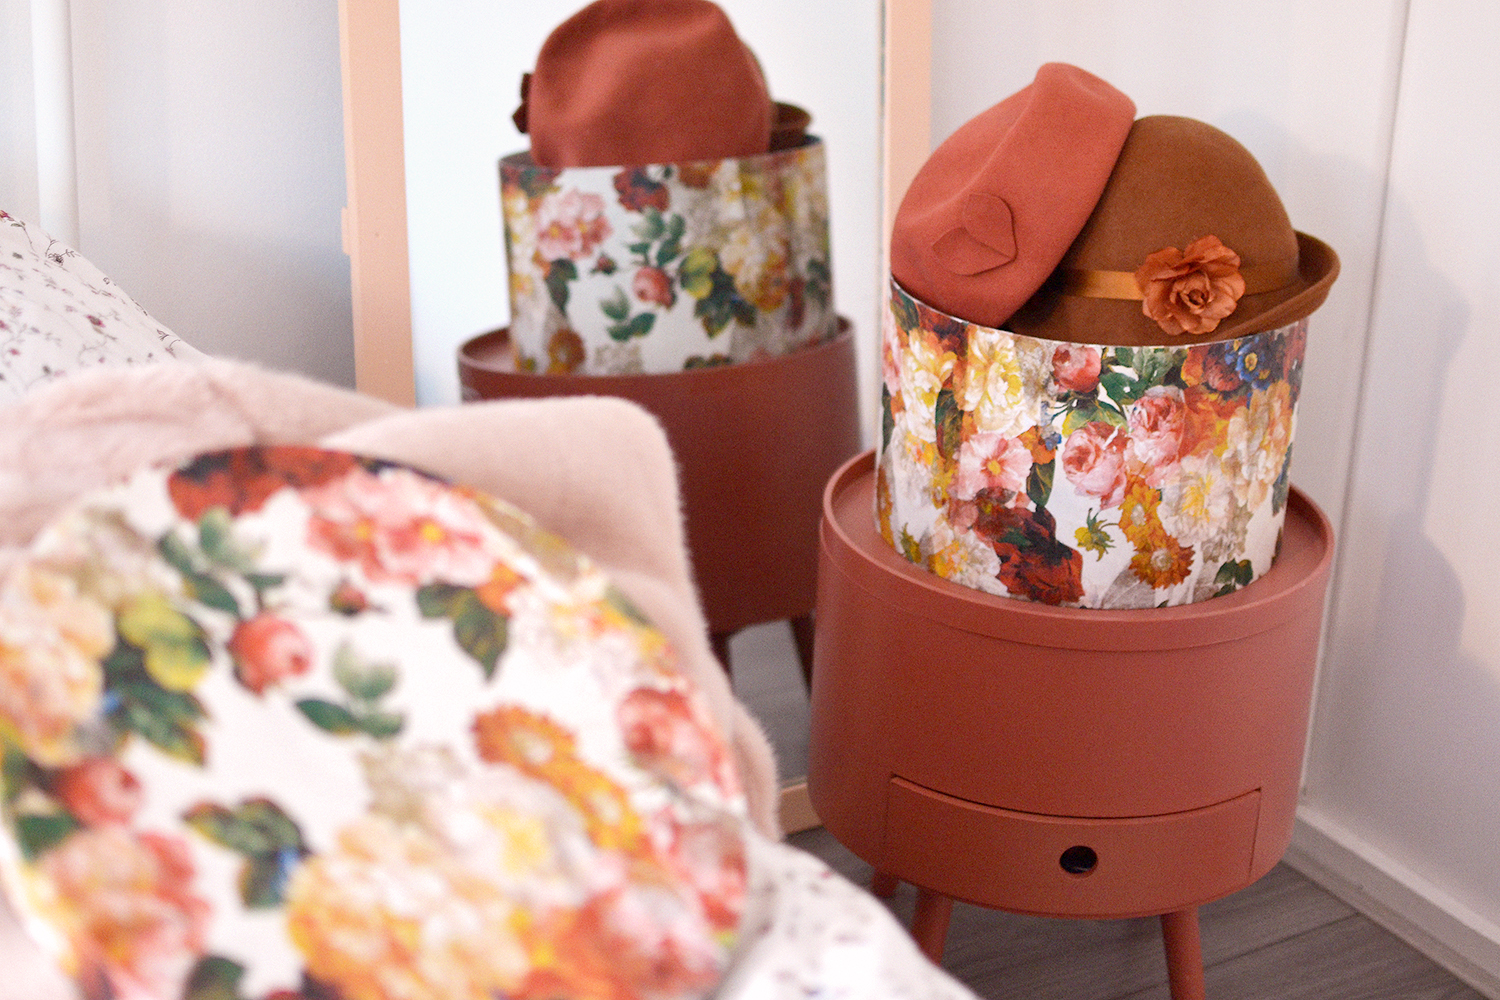 Retromantisch - DIY - hoedendoos bloemen decoupage servetten floral retro romantic mod podge napkins flowers bloemen hat box